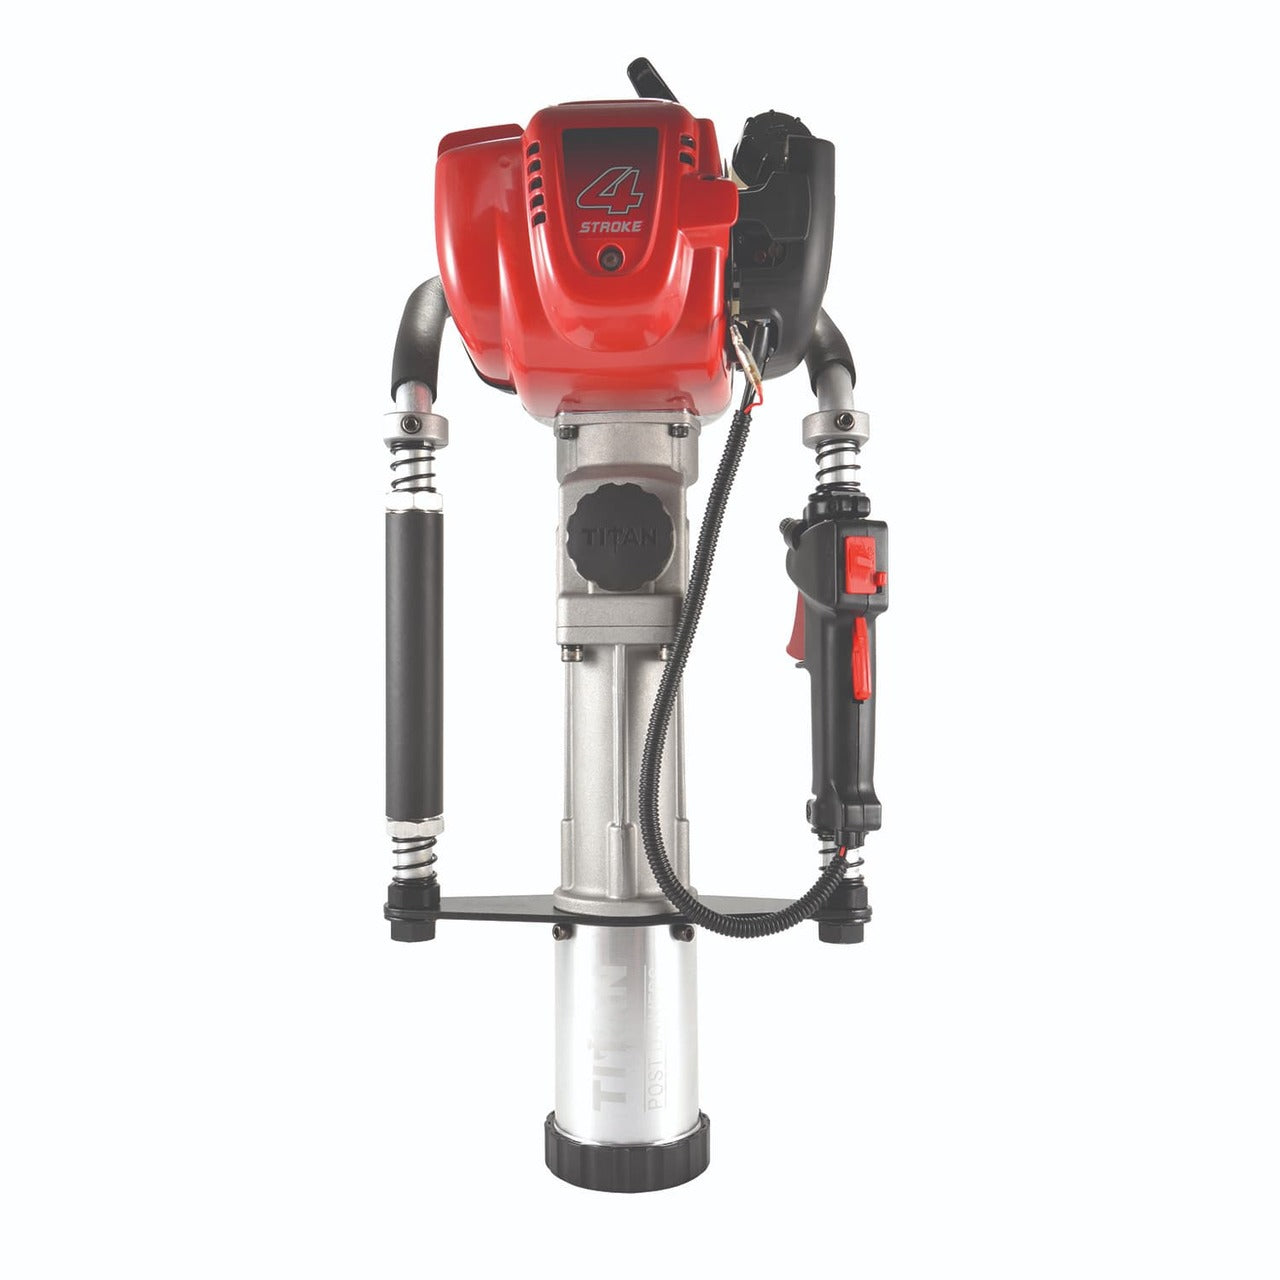 Titan PGD2875H Honda Engine Gas Powered Post Driver